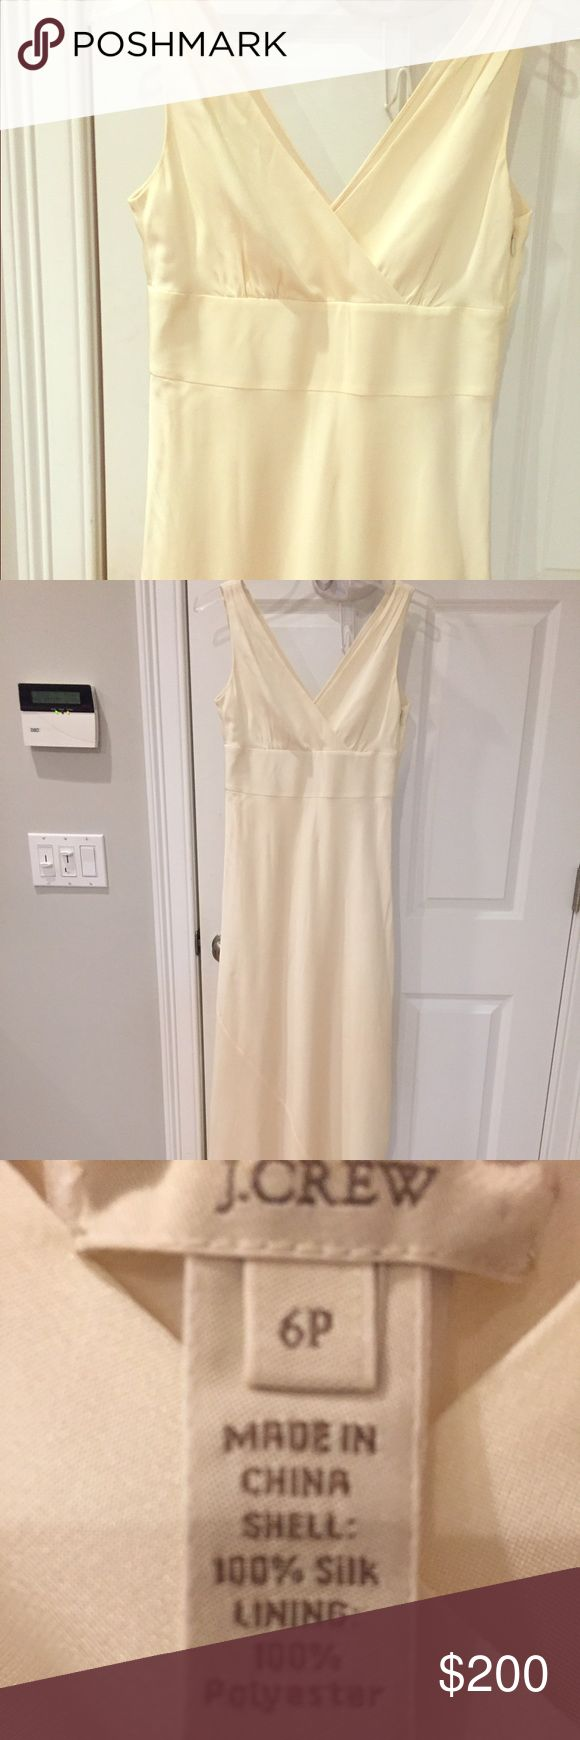 J Crew 100% silk wedding dress Worn once (!), dry cleaned and then stored in original box wrapped in tissue. Includes box and garment bag. One small spot on back of dress shown in last photo. Otherwise perfect condition! J. Crew Dresses Wedding